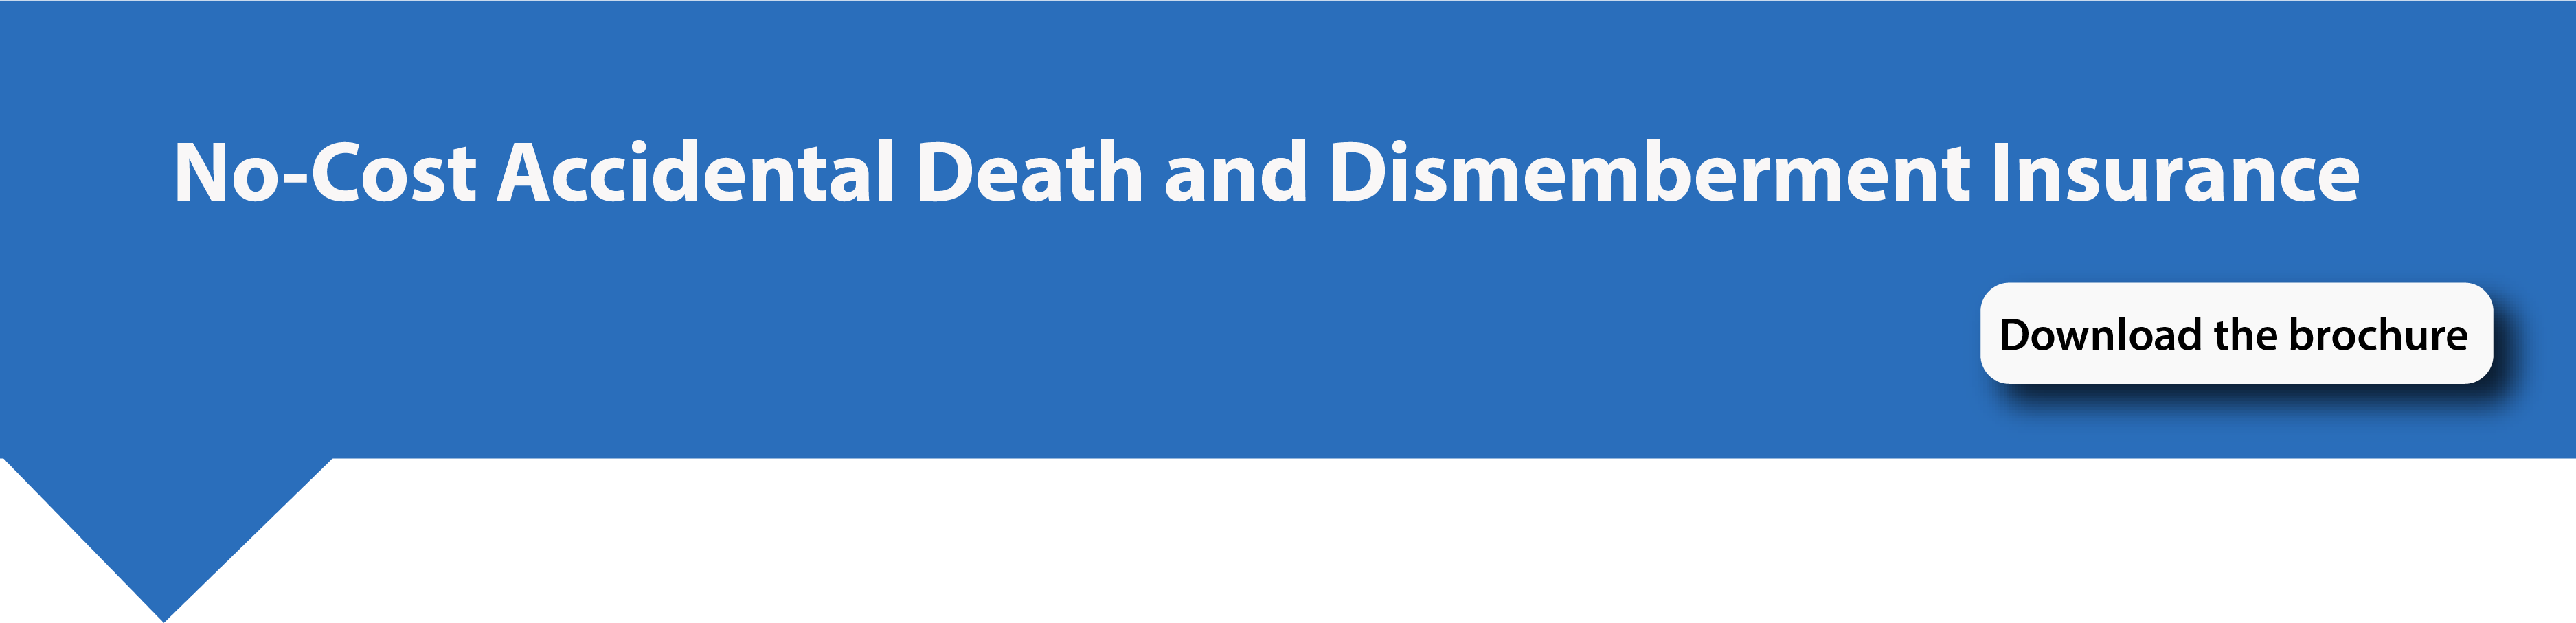 Accidental Death Dismemberment